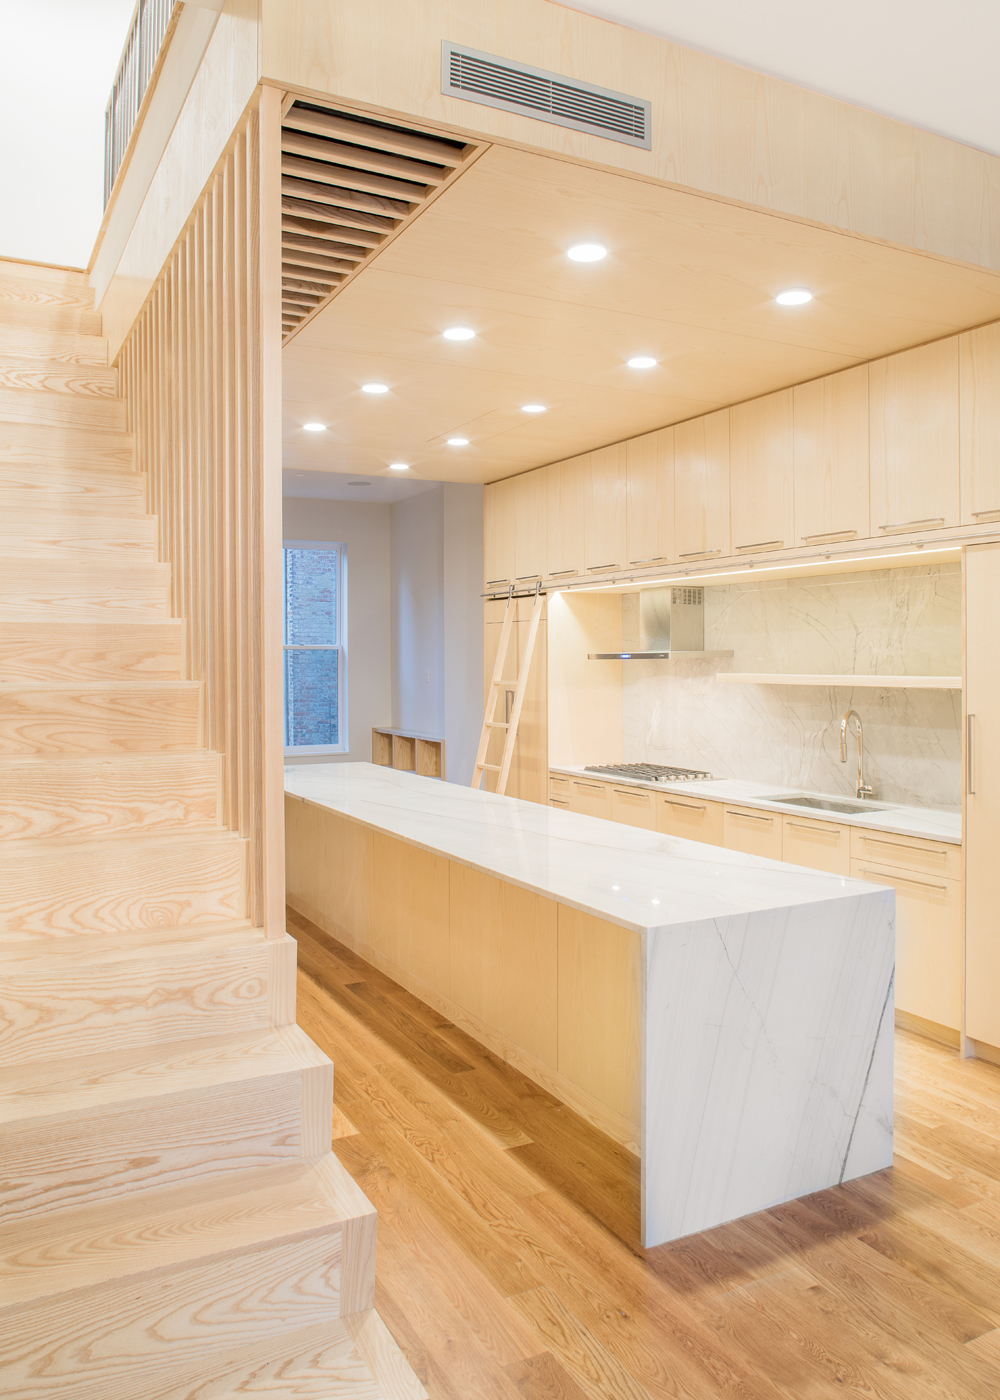 67 Wayne Maka Kitchen Stair 5 Web.jpg